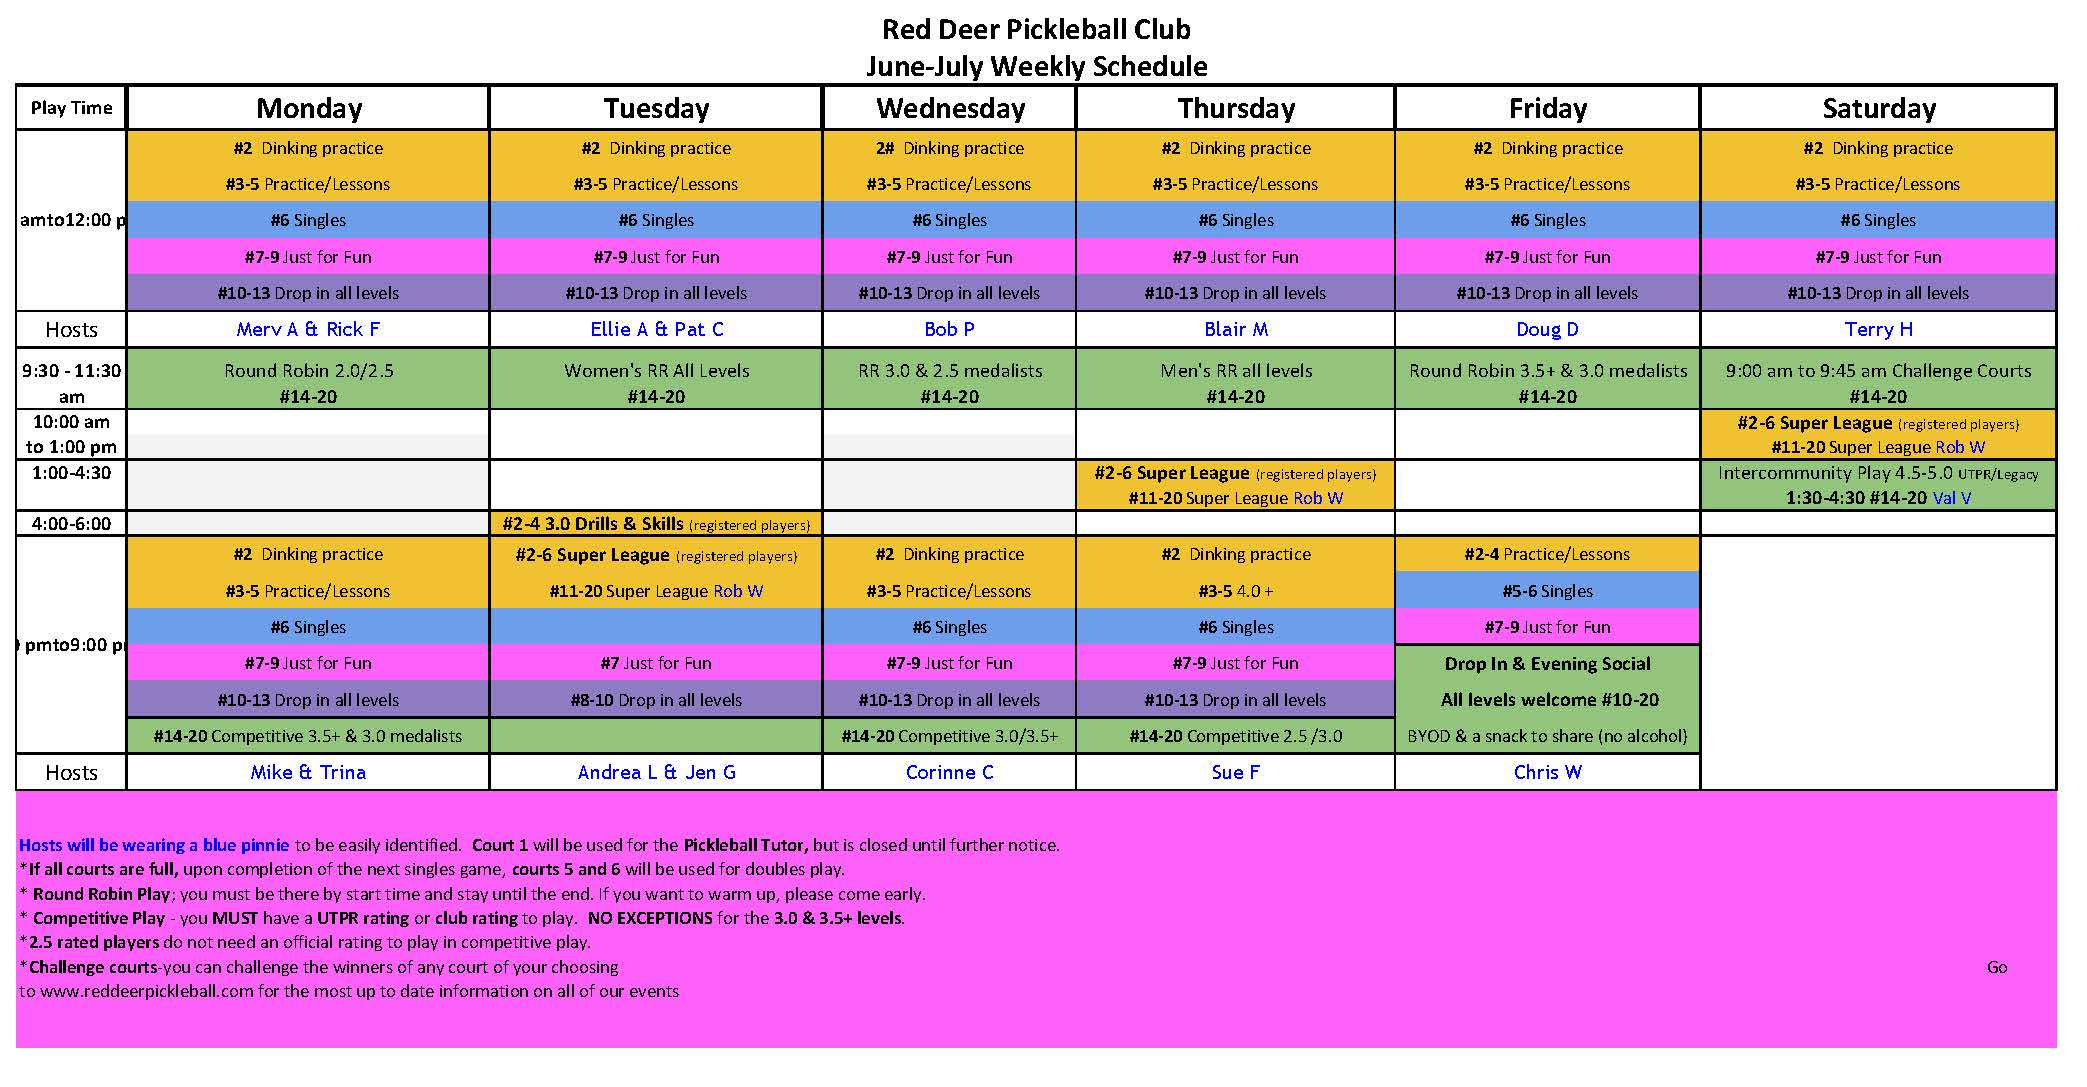 RDPC Weekly Schedule